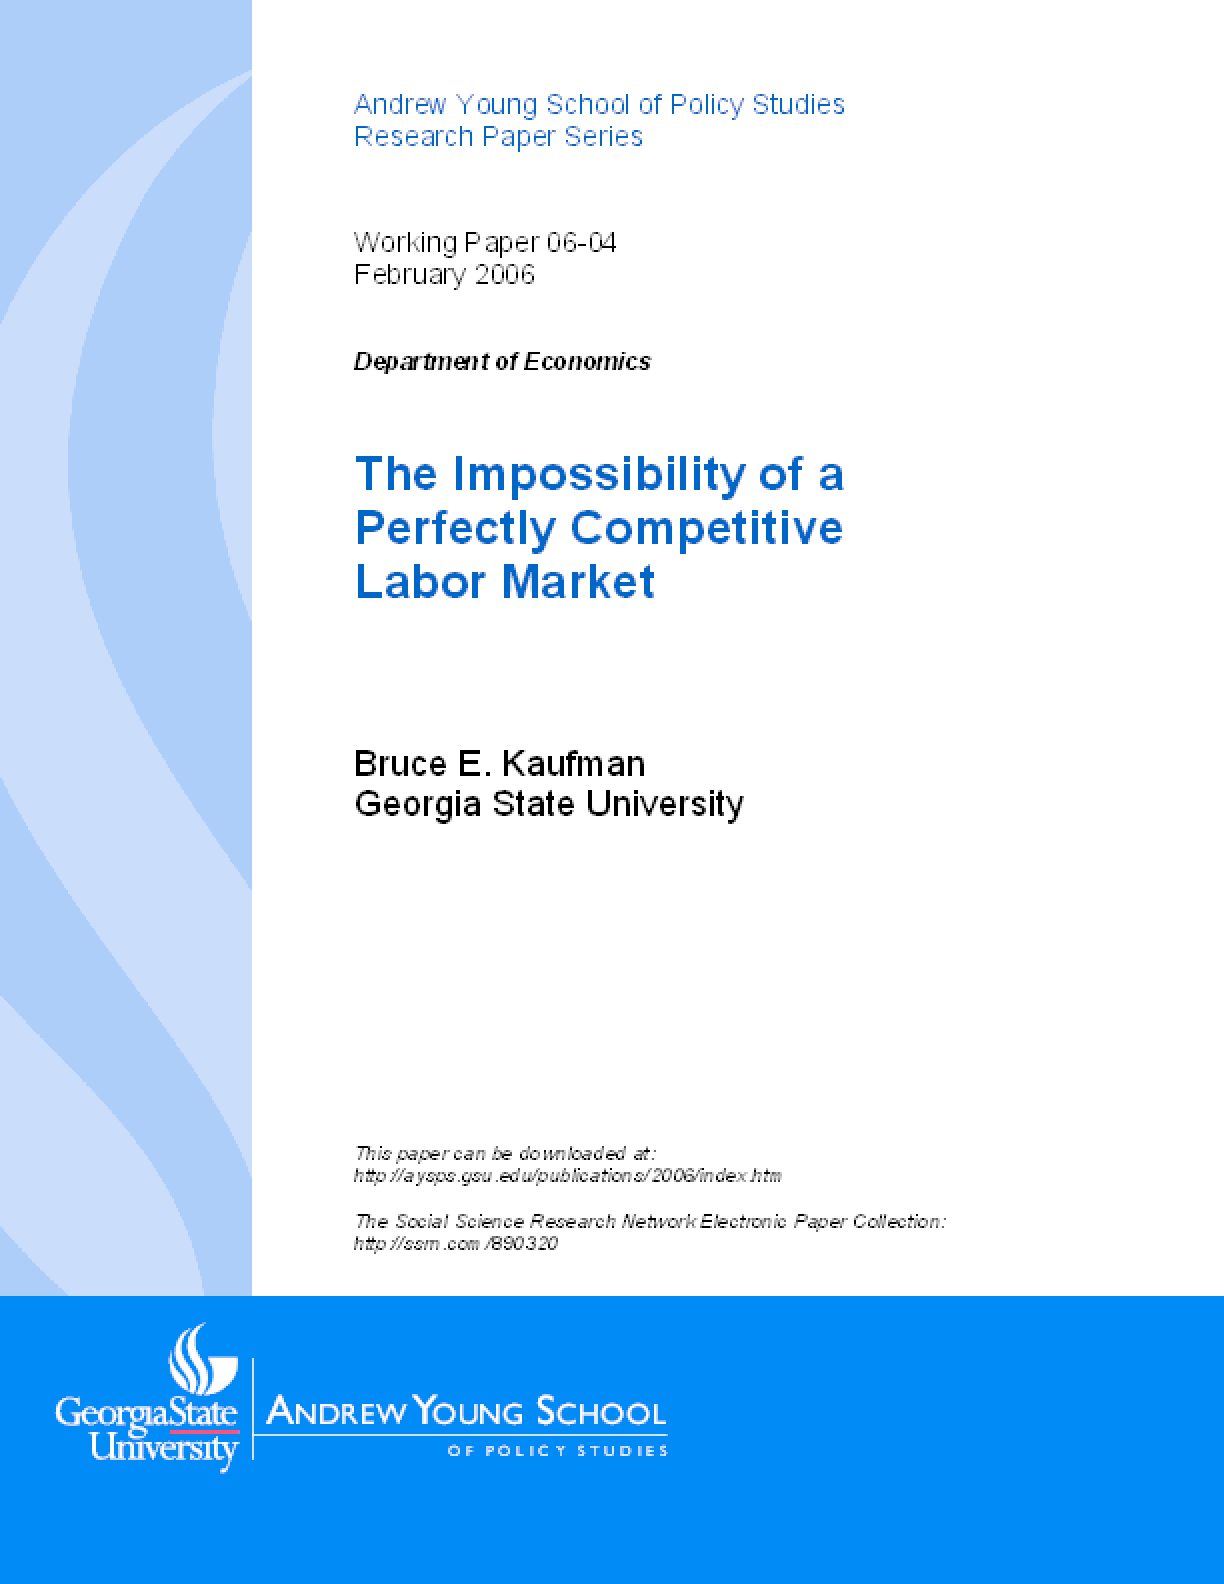 The Impossibility of a Perfectly Competitive Labor Market